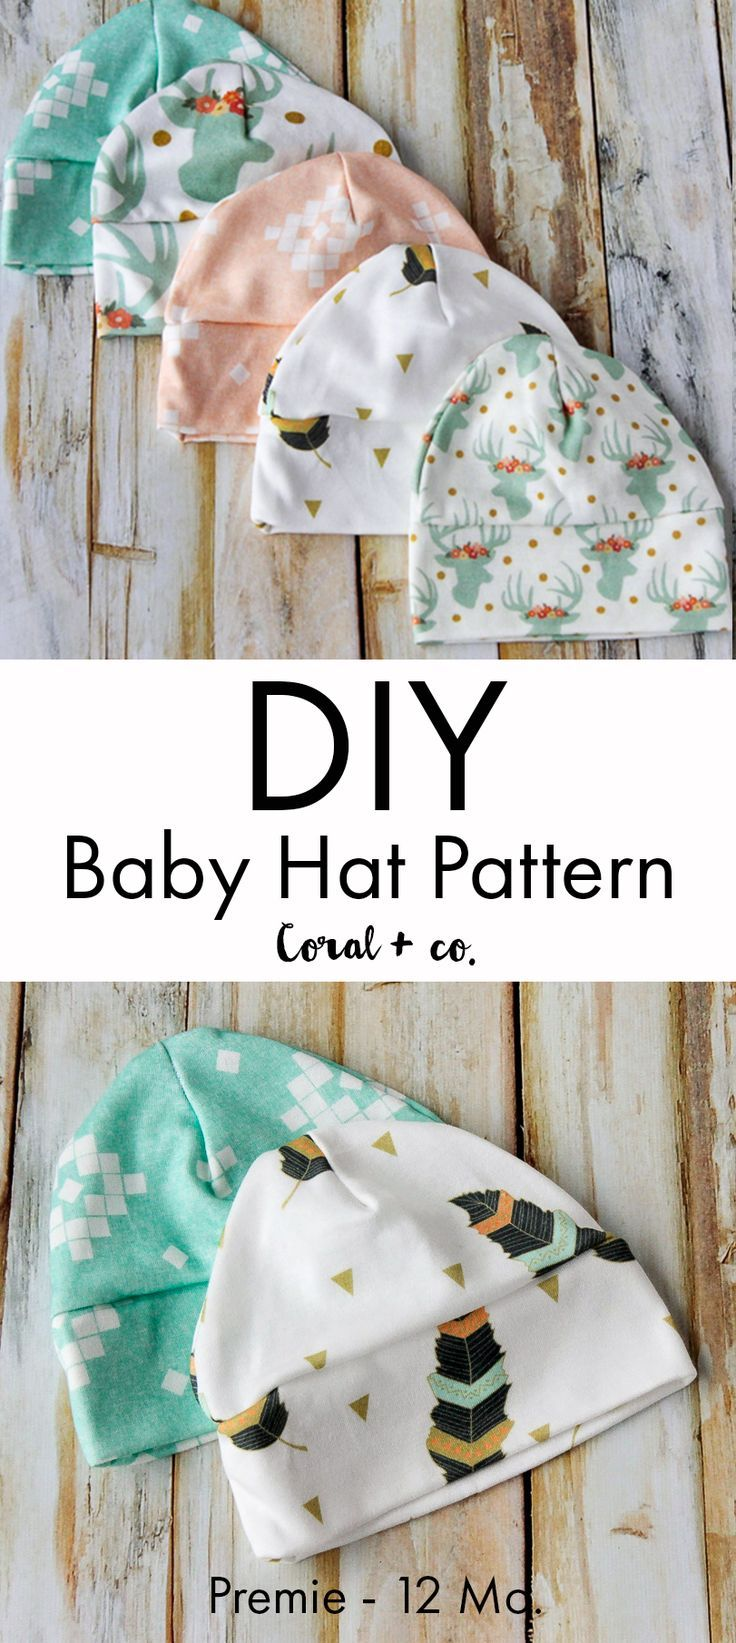 DIY Baby Hat Sewing Pattern and Tutorial - Knit Baby Hat